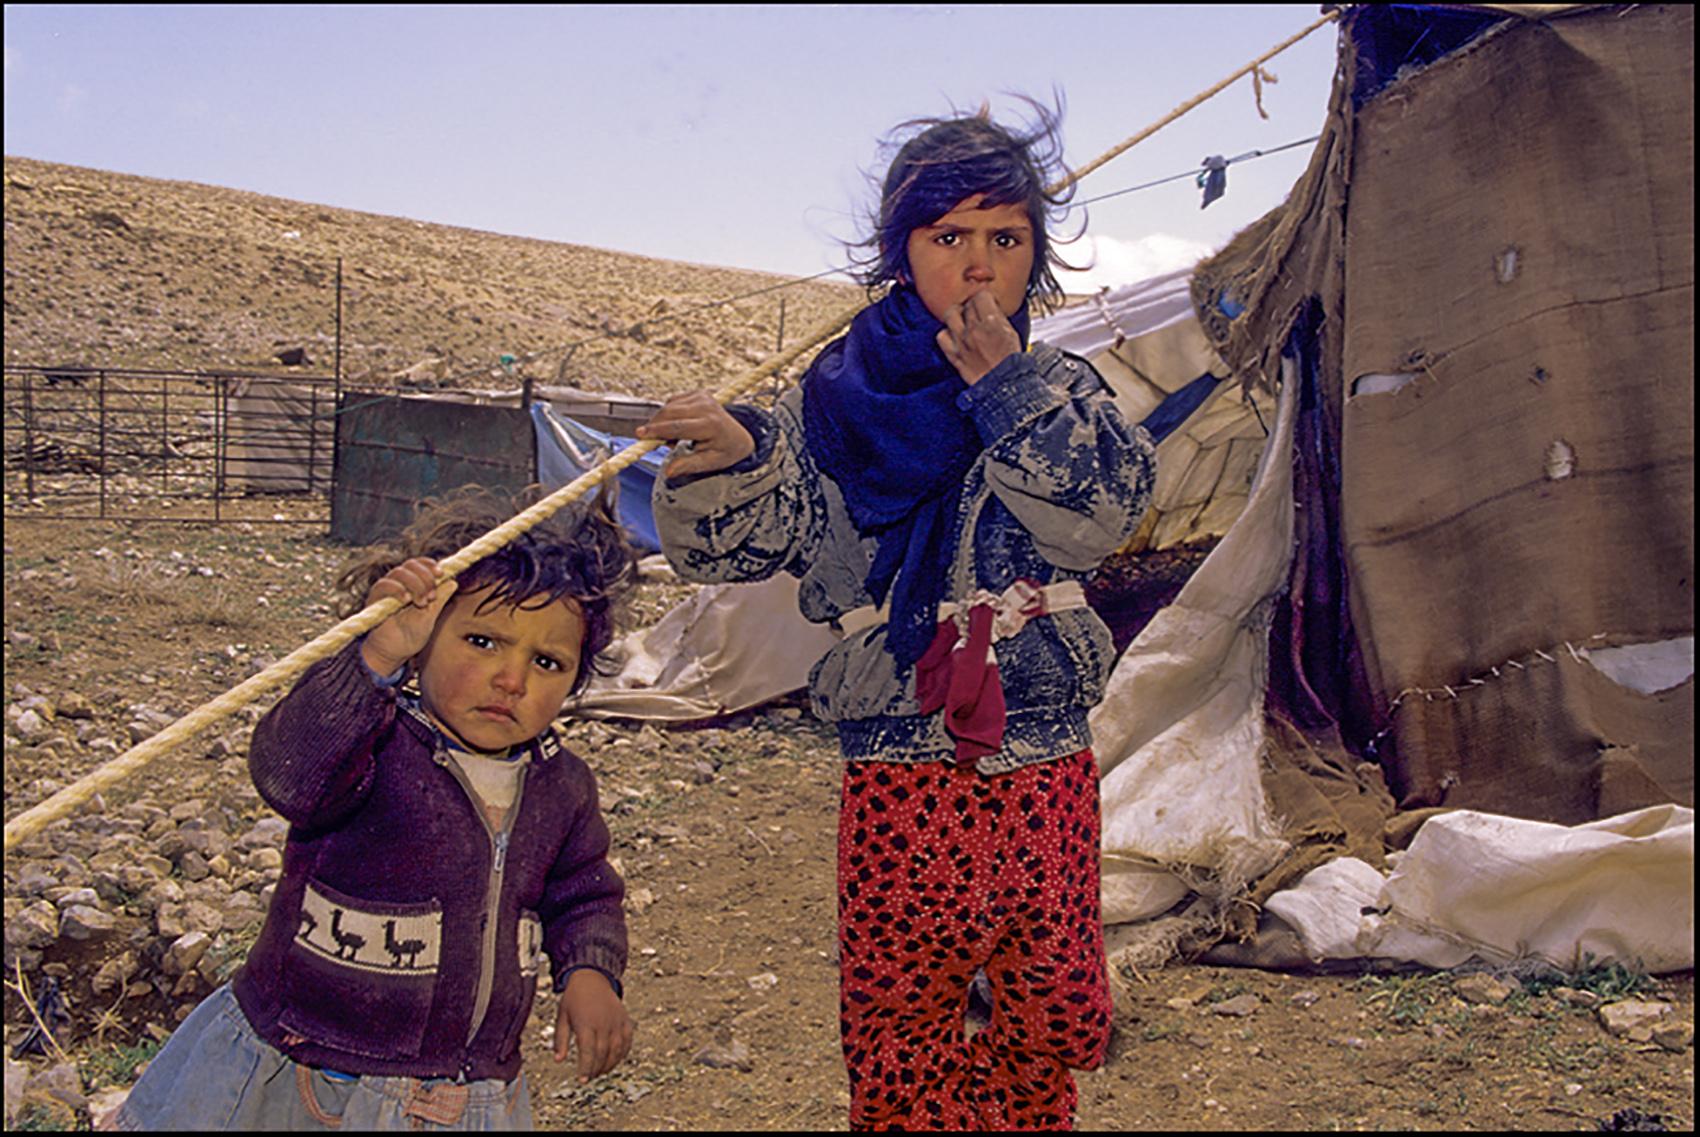 Bedouin children, Iran